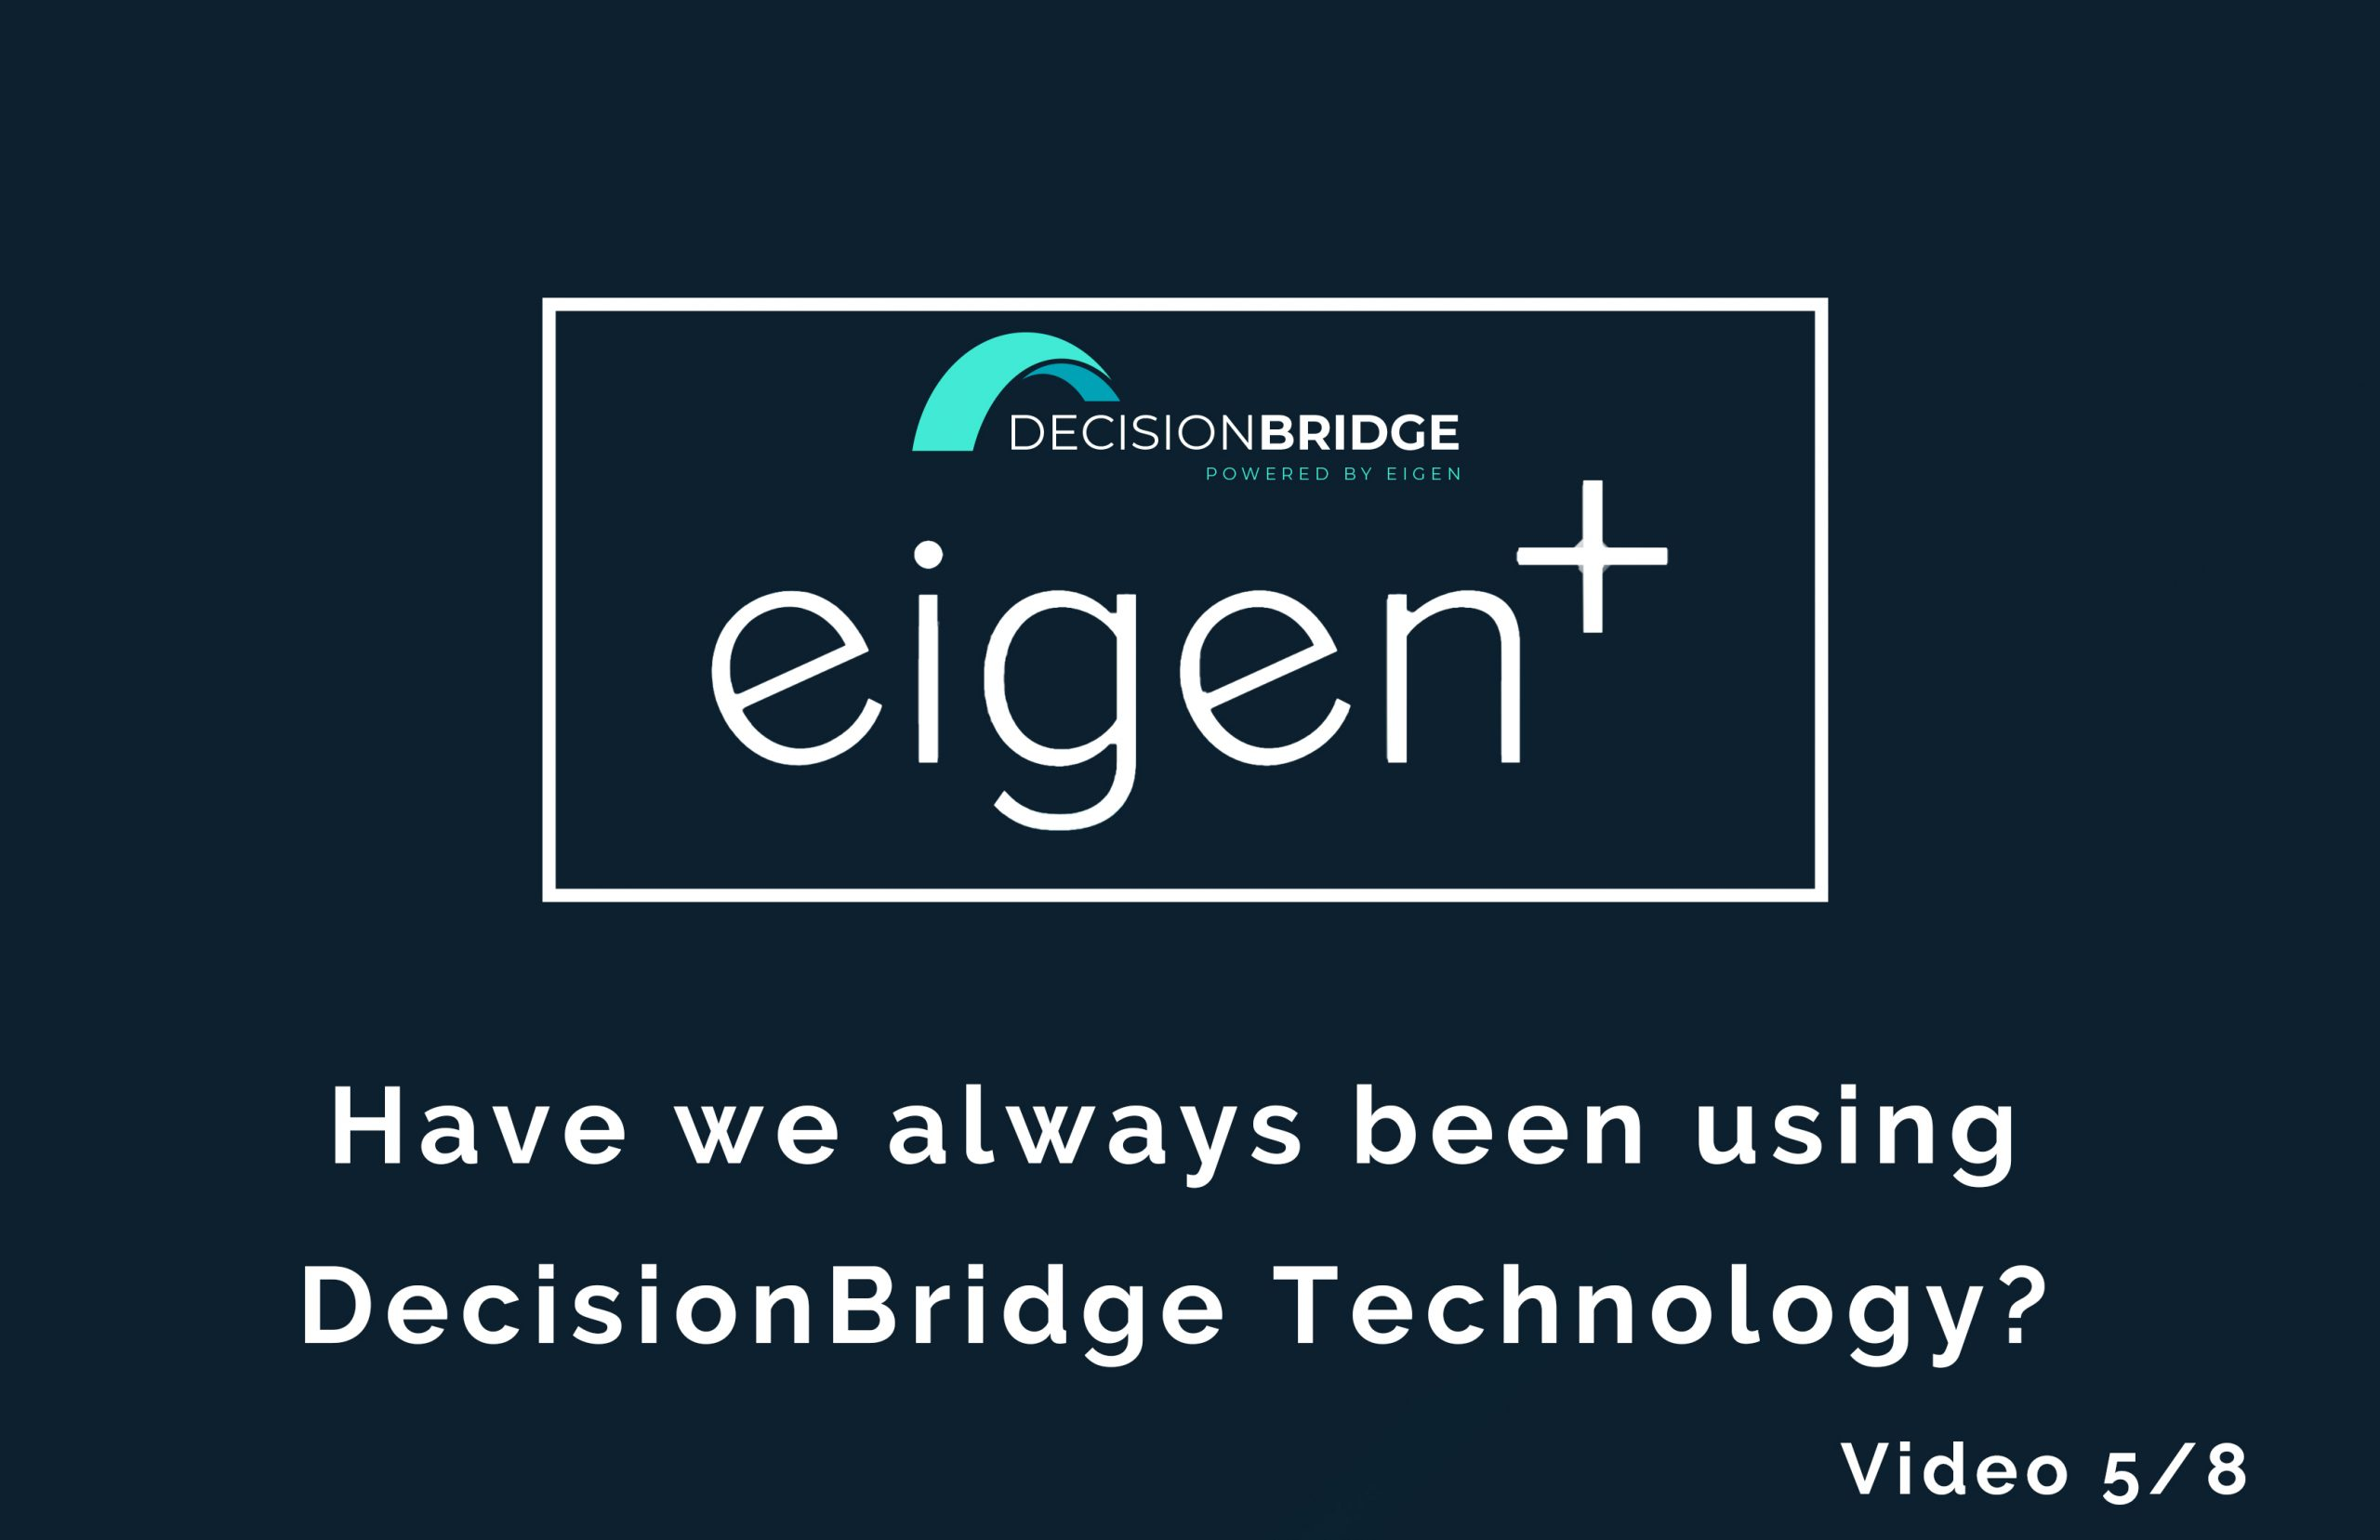 Decision Bridge Technology by Eigen